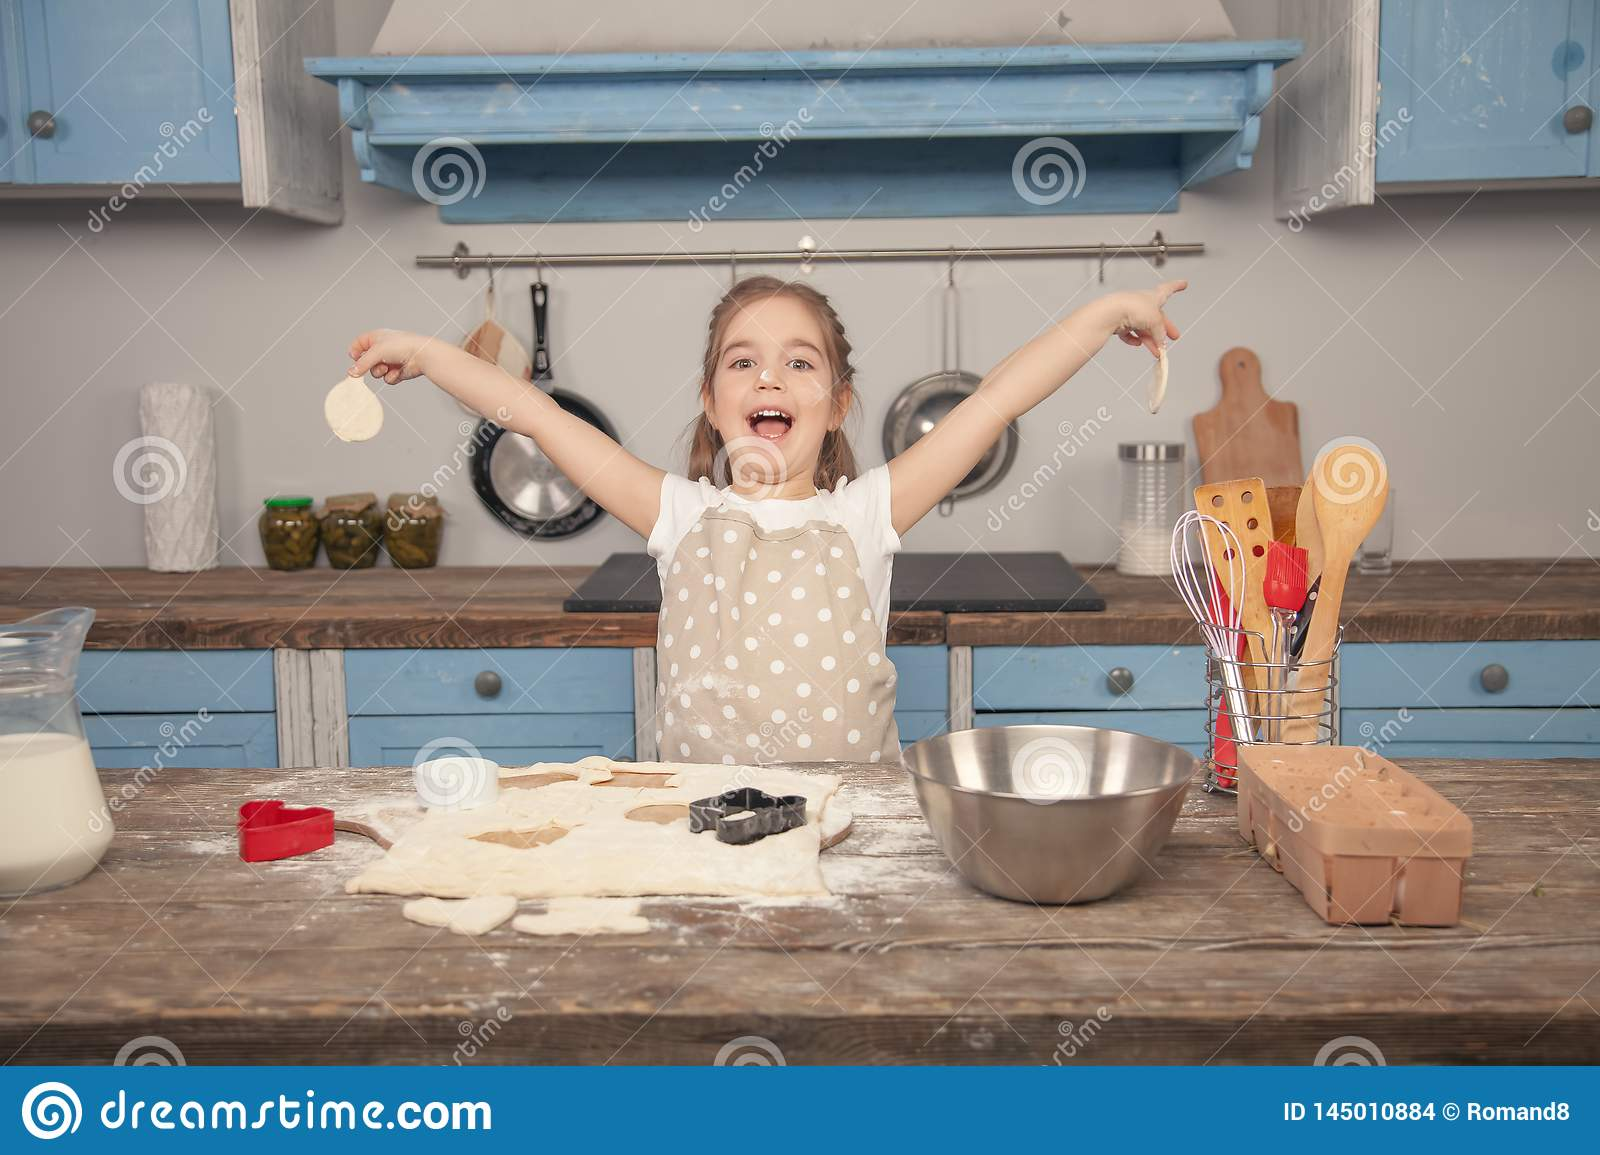 Happy little girl in the kitchen is making different shapes of cookies out of dough, helping her mom. Little helper